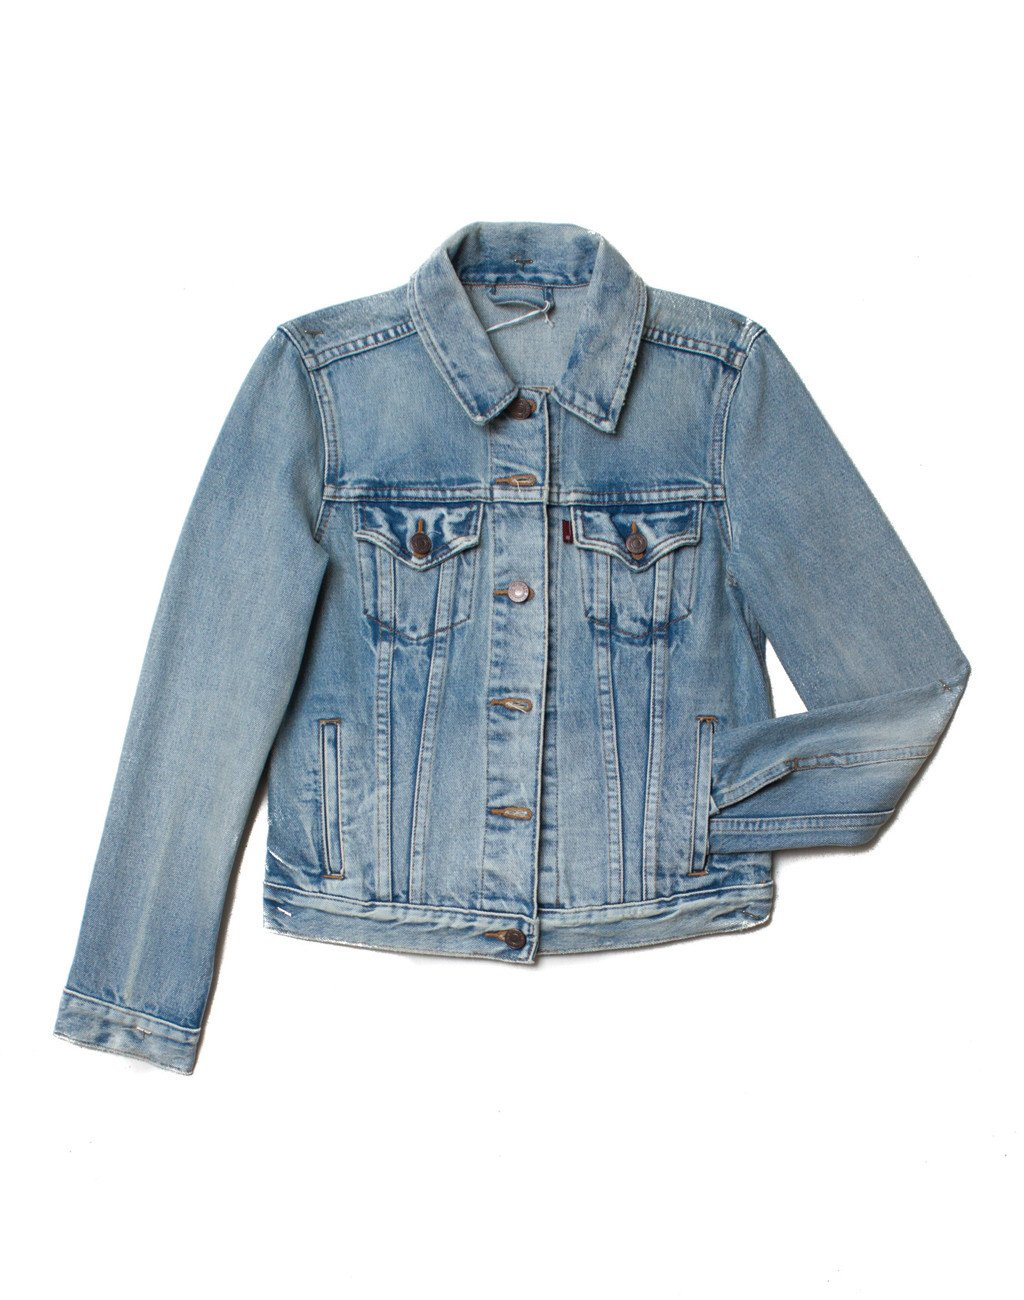 Levi's Original Trucker Denim Jacket